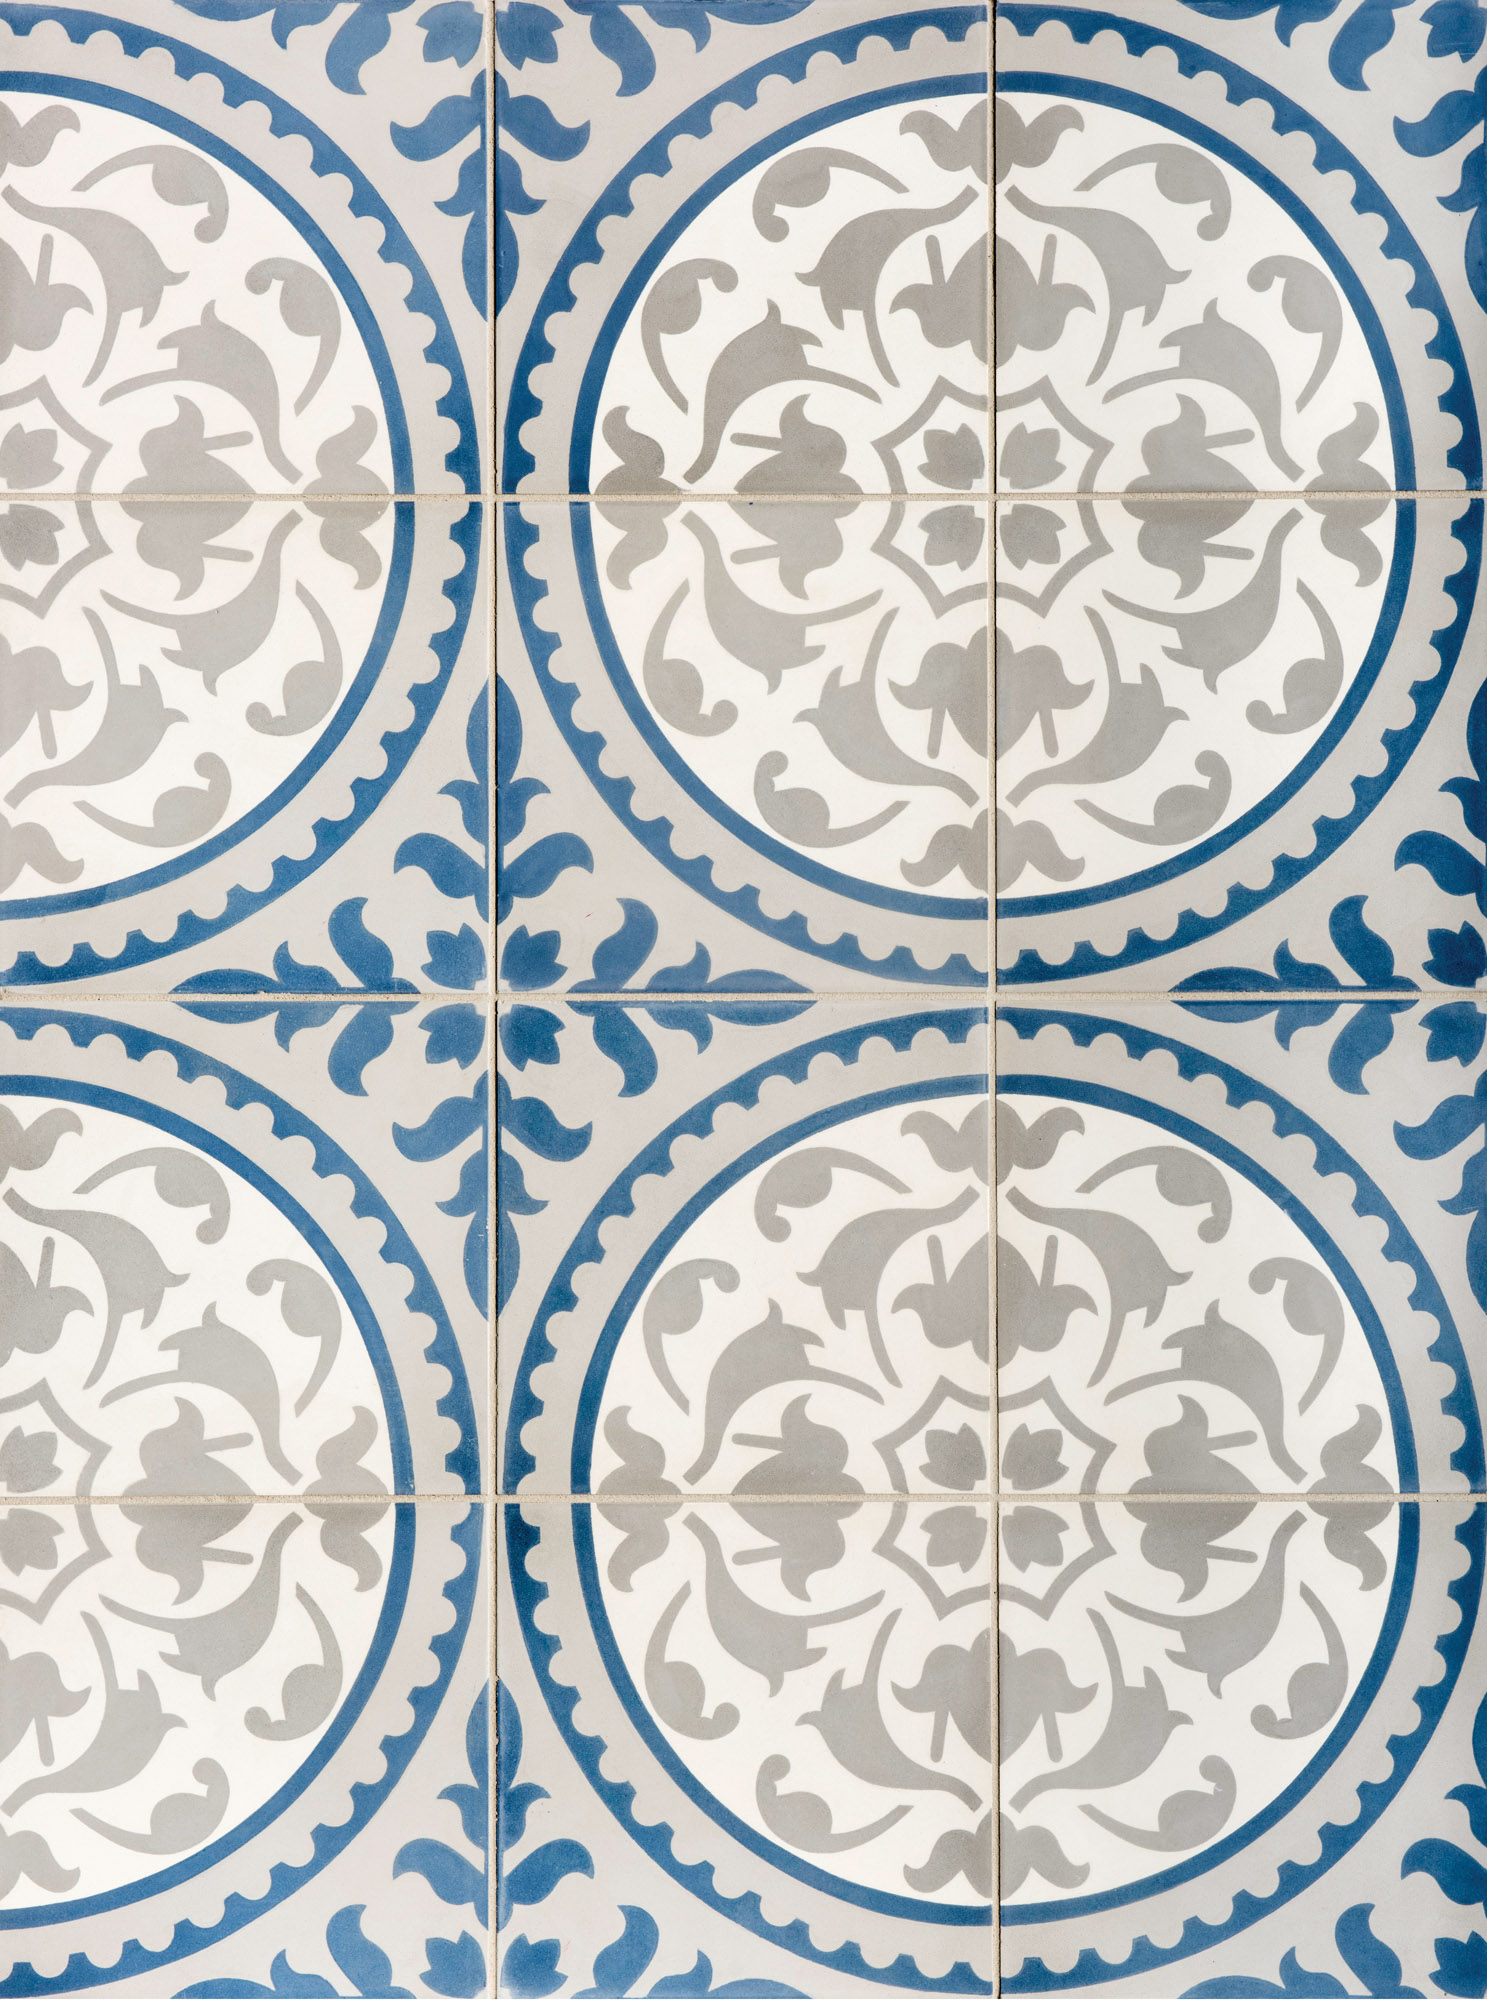 Alba tiles from Walker Zanger